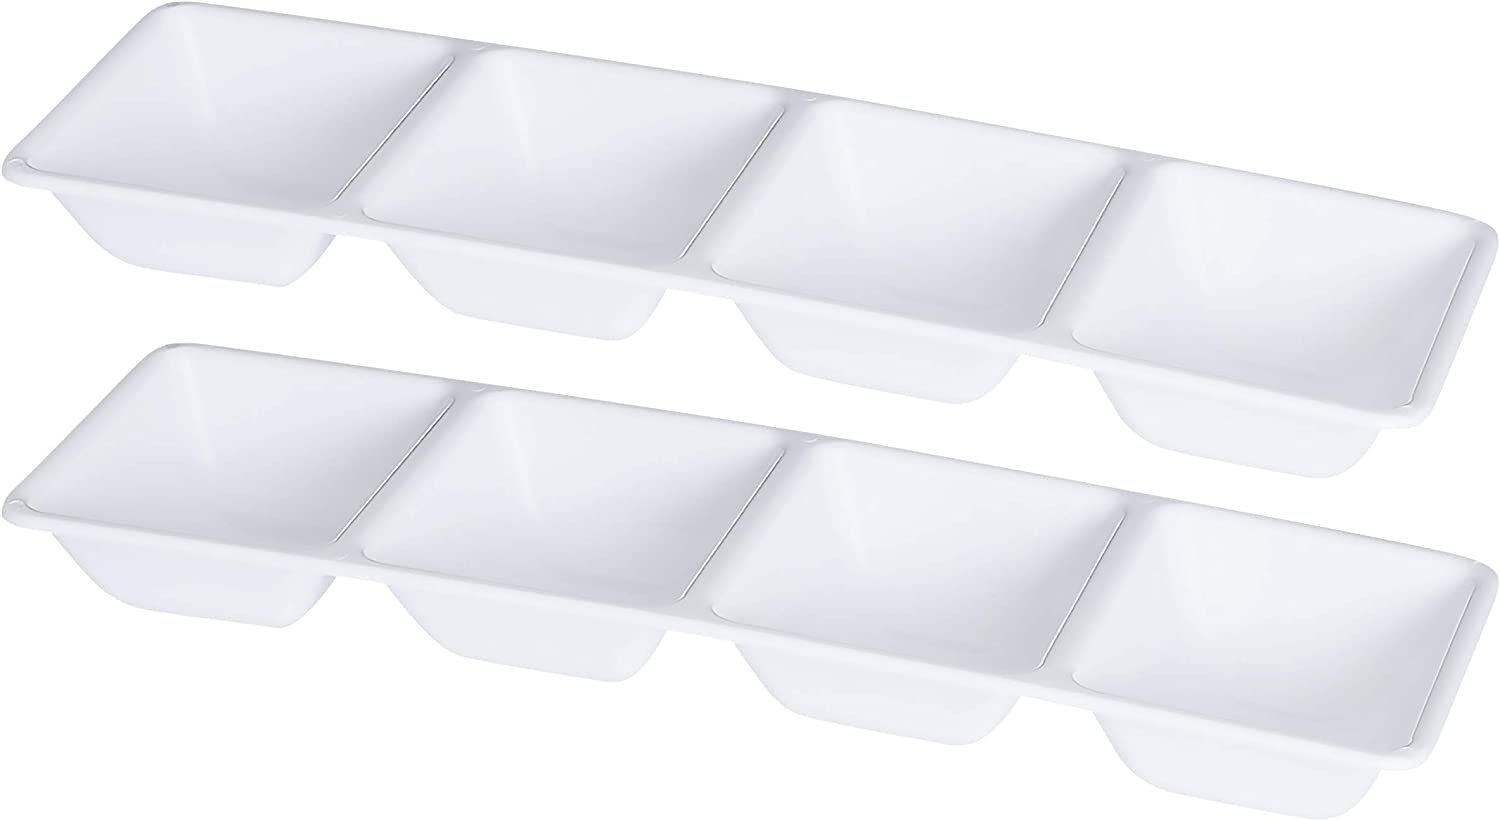   Plasticpro 4 Sectional Rectangle Plastic Disposable Serving Tray/Platter 5 X 16 White Pack of 2: Platters